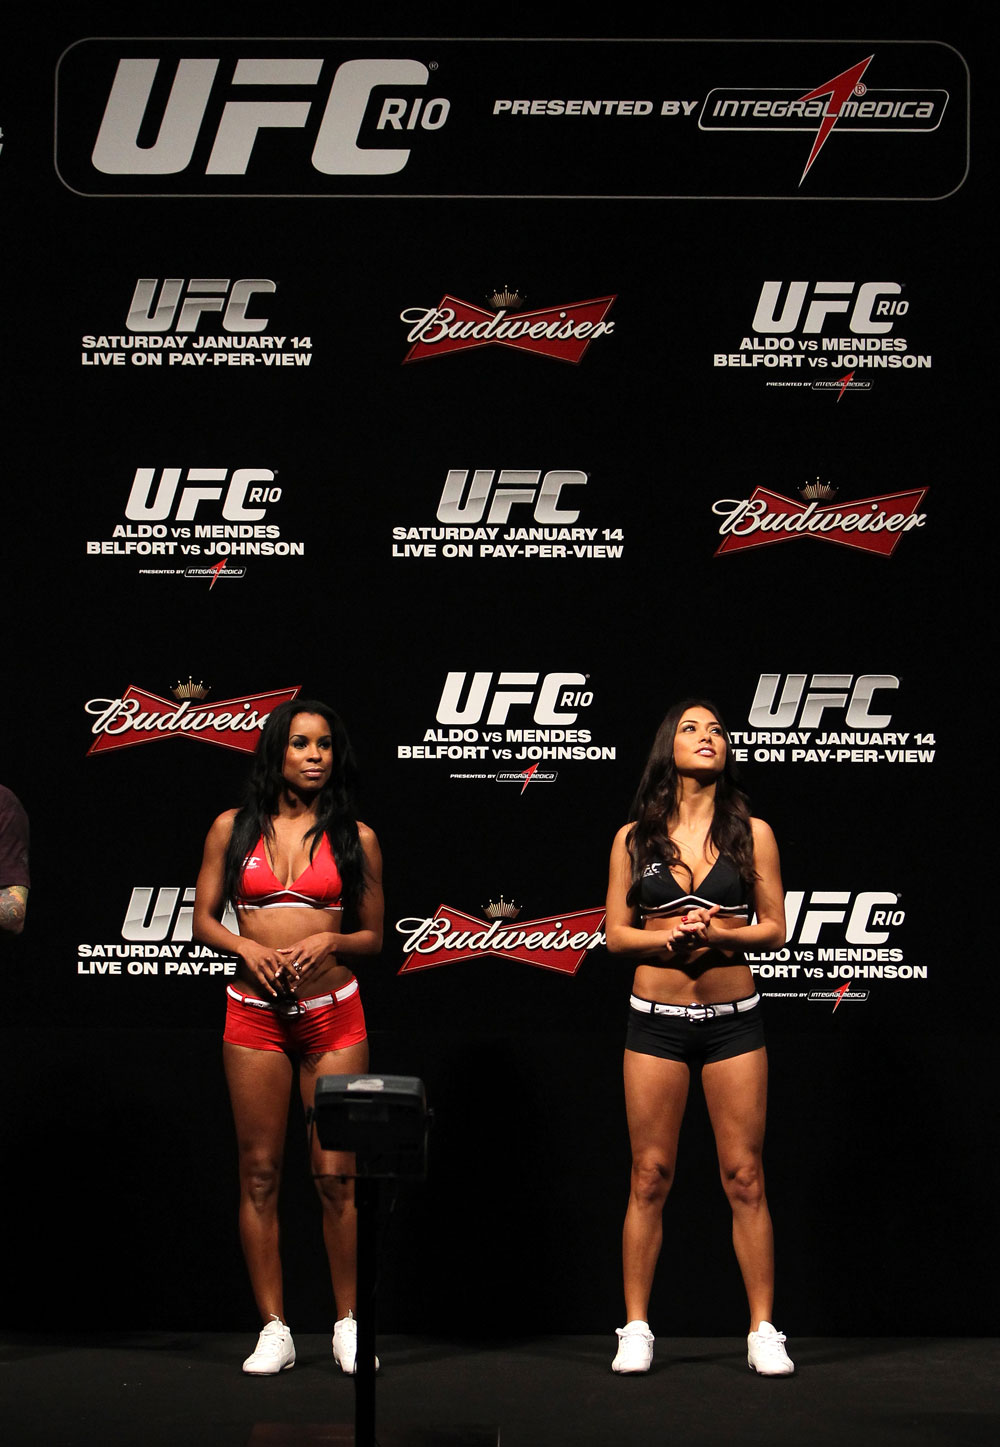 RIO DE JANEIRO, BRAZIL - JANUARY 13:  (L-R) UFC Octagon Girls Chandella Powell and Arianny Celeste attend the UFC 142 Weigh In at HSBC Arena on January 13, 2012 in Rio de Janeiro, Brazil.  (Photo by Josh Hedges/Zuffa LLC/Zuffa LLC via Getty Images)